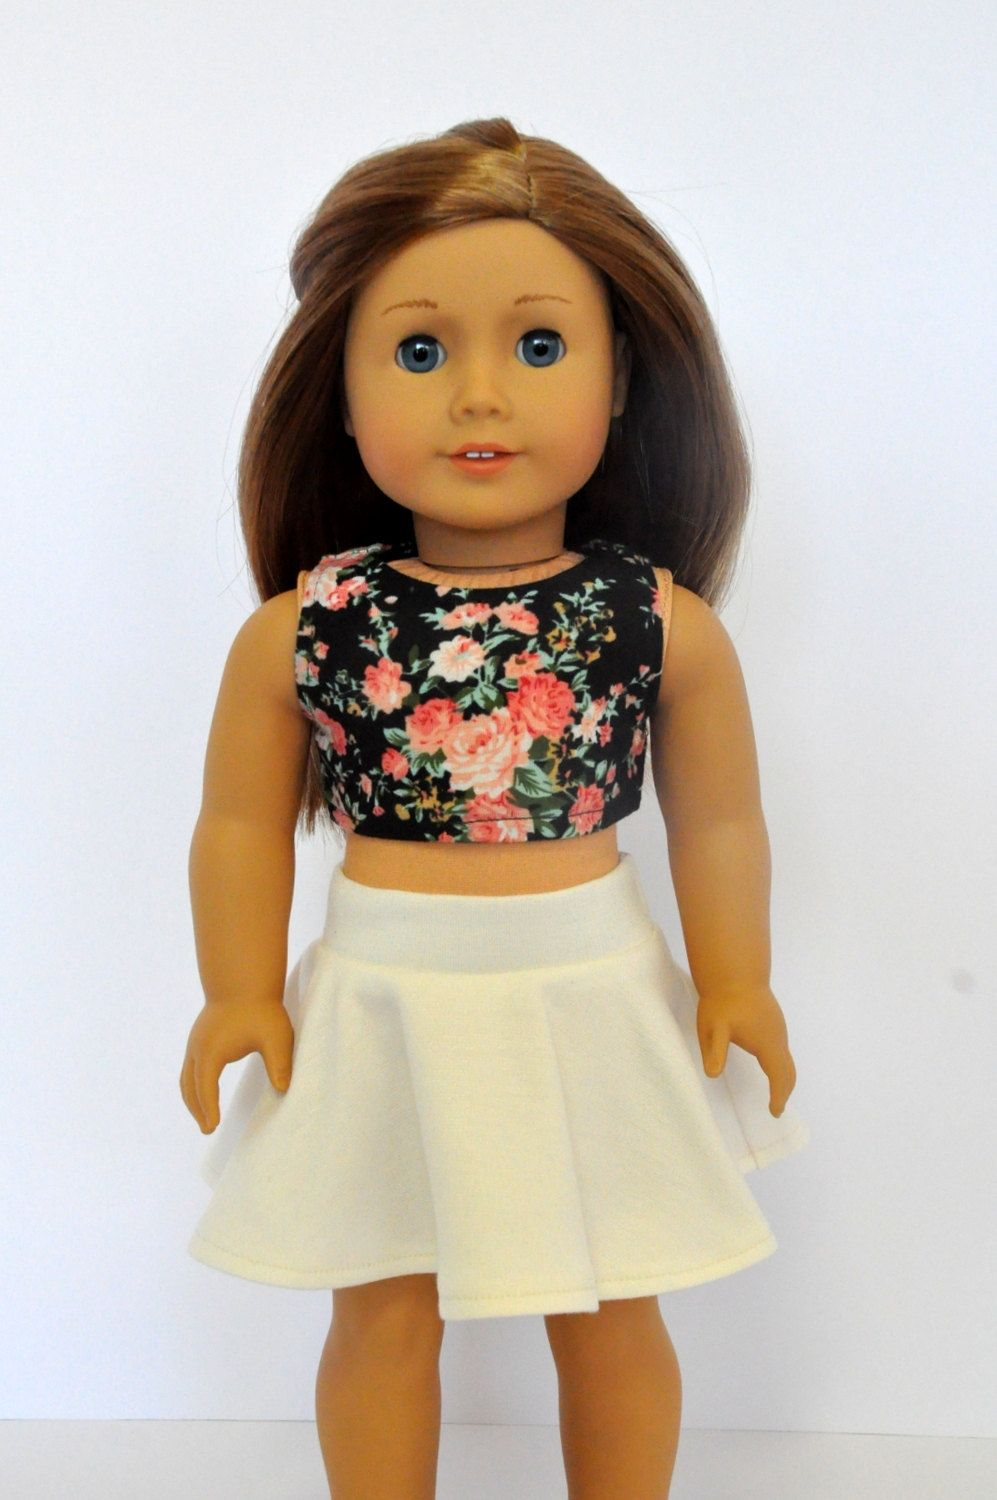 WHITE TIE-FRONT BLOUSE /& PINK FLOWER TRIMMED WHITE SKIRT fit American Girl Dolls